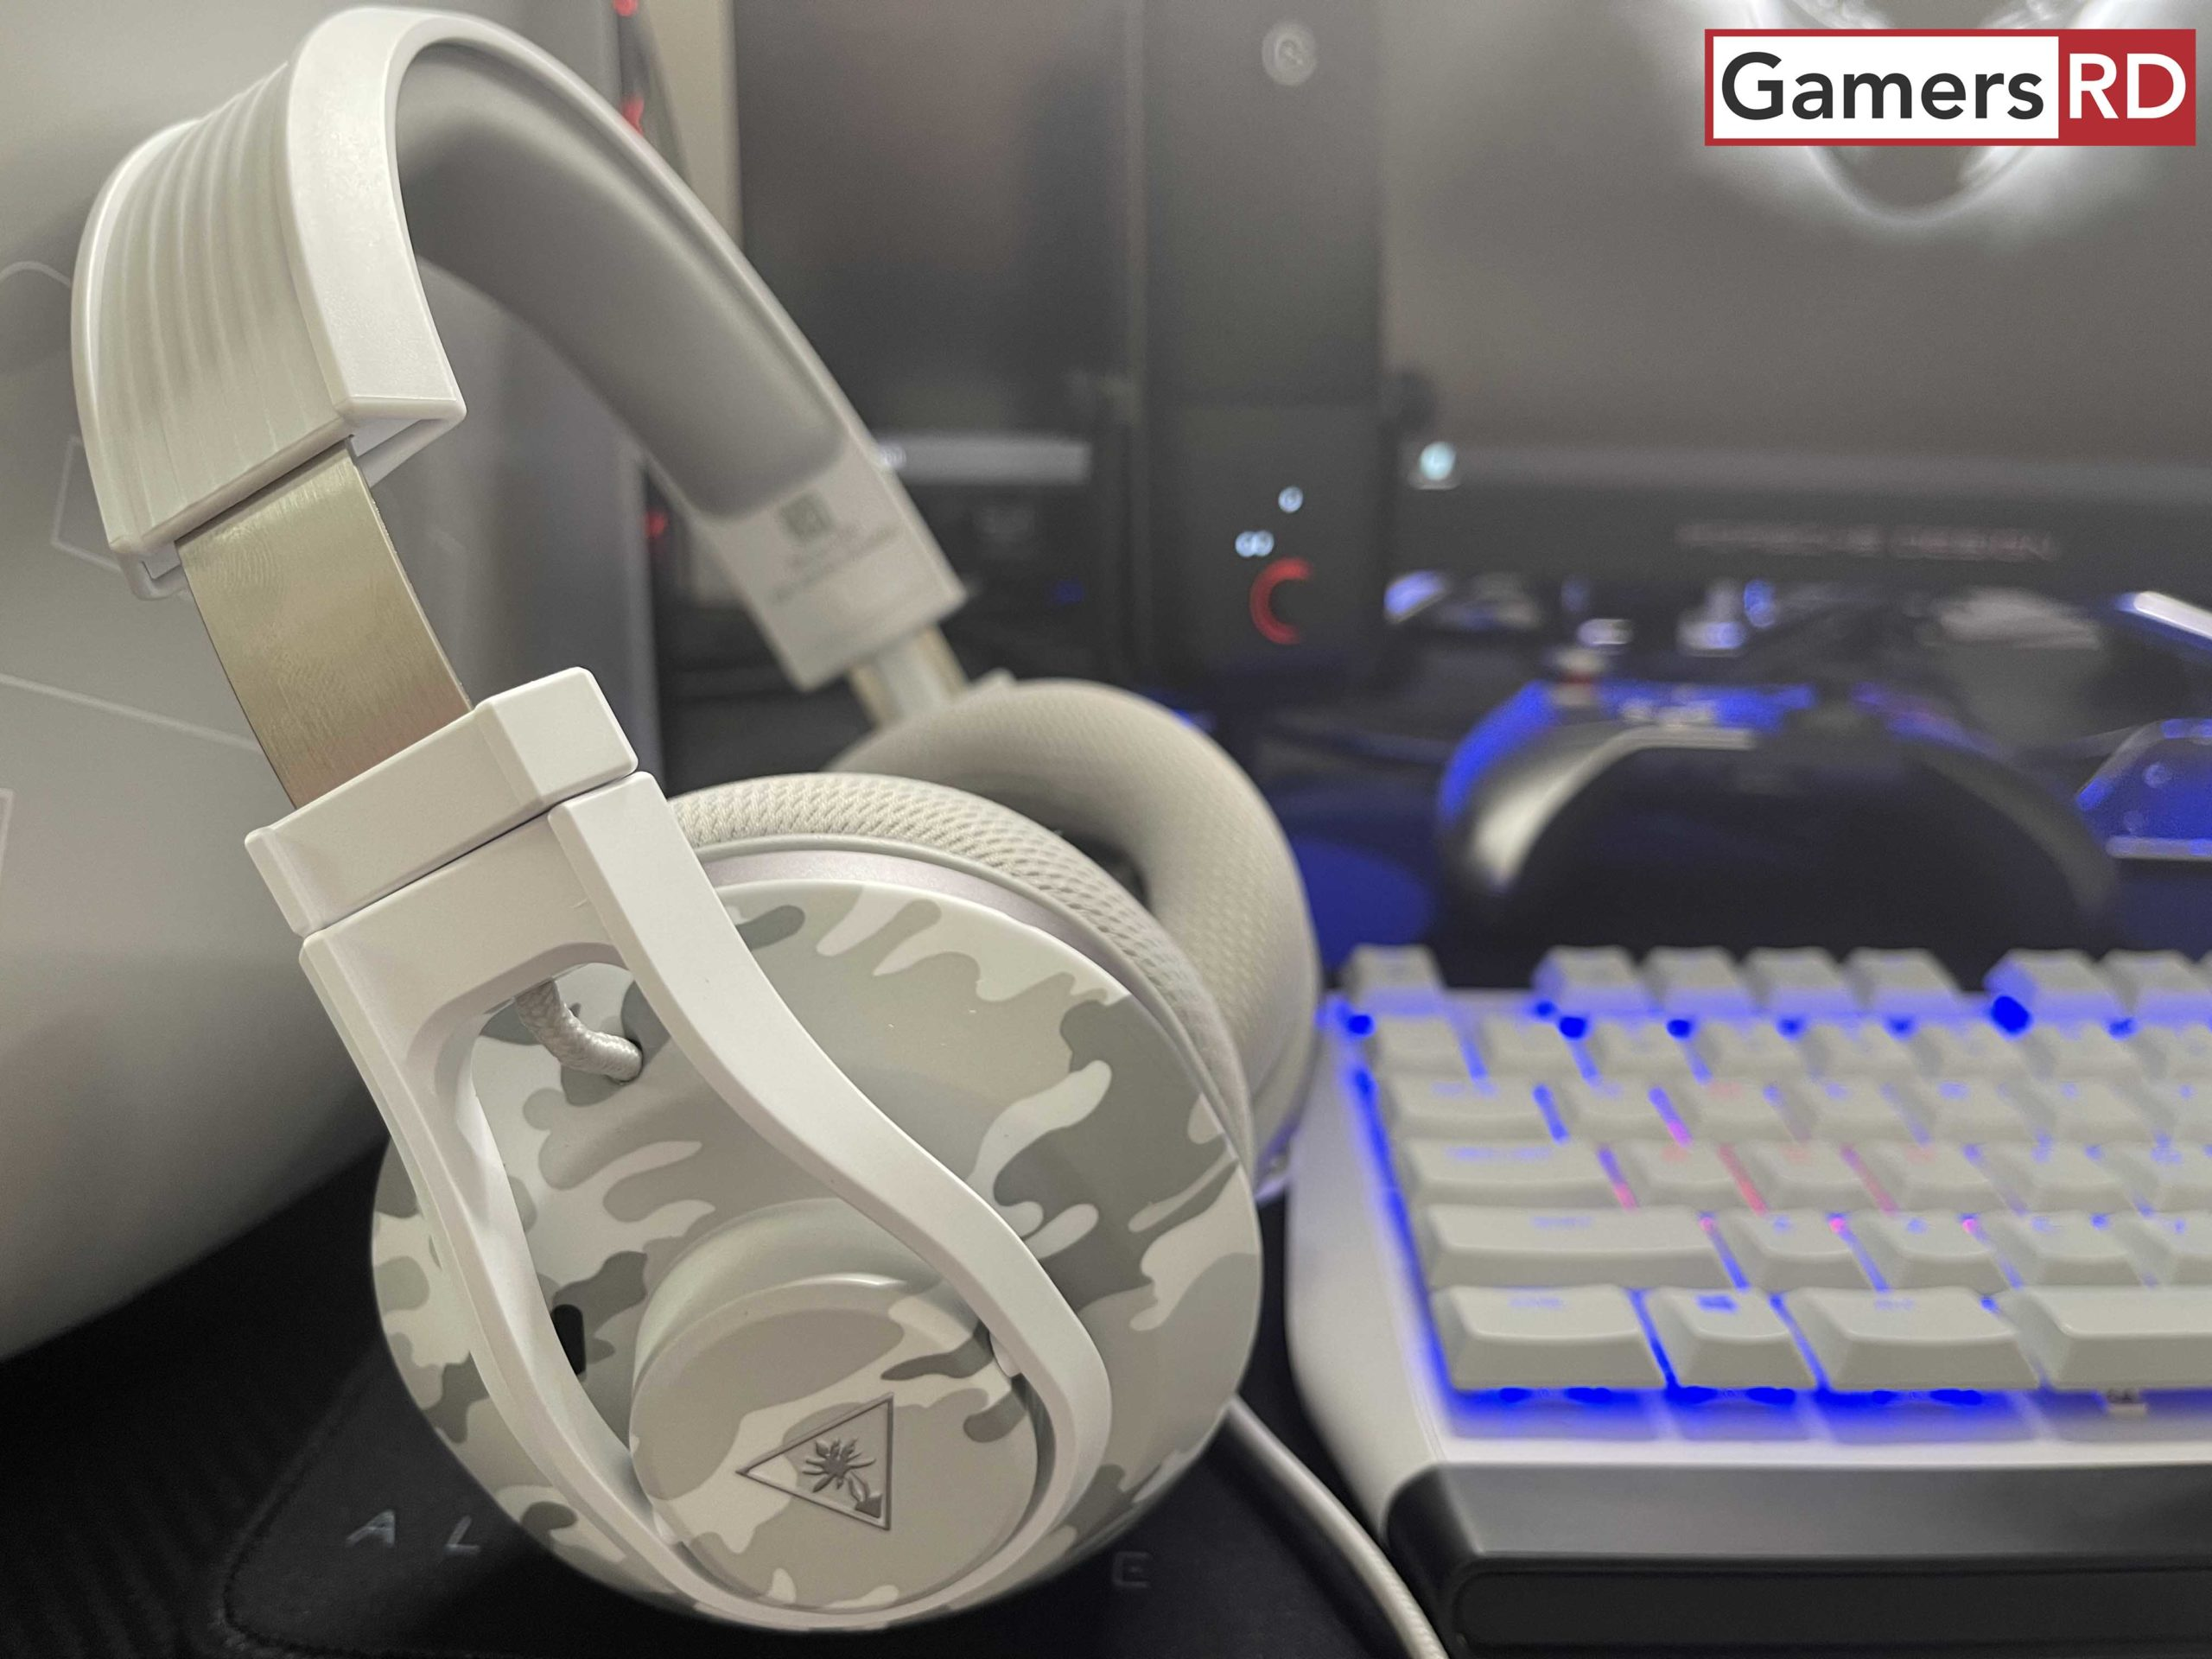 Turtle Beach Recon 500 Gaming Headset Review, GamersRD